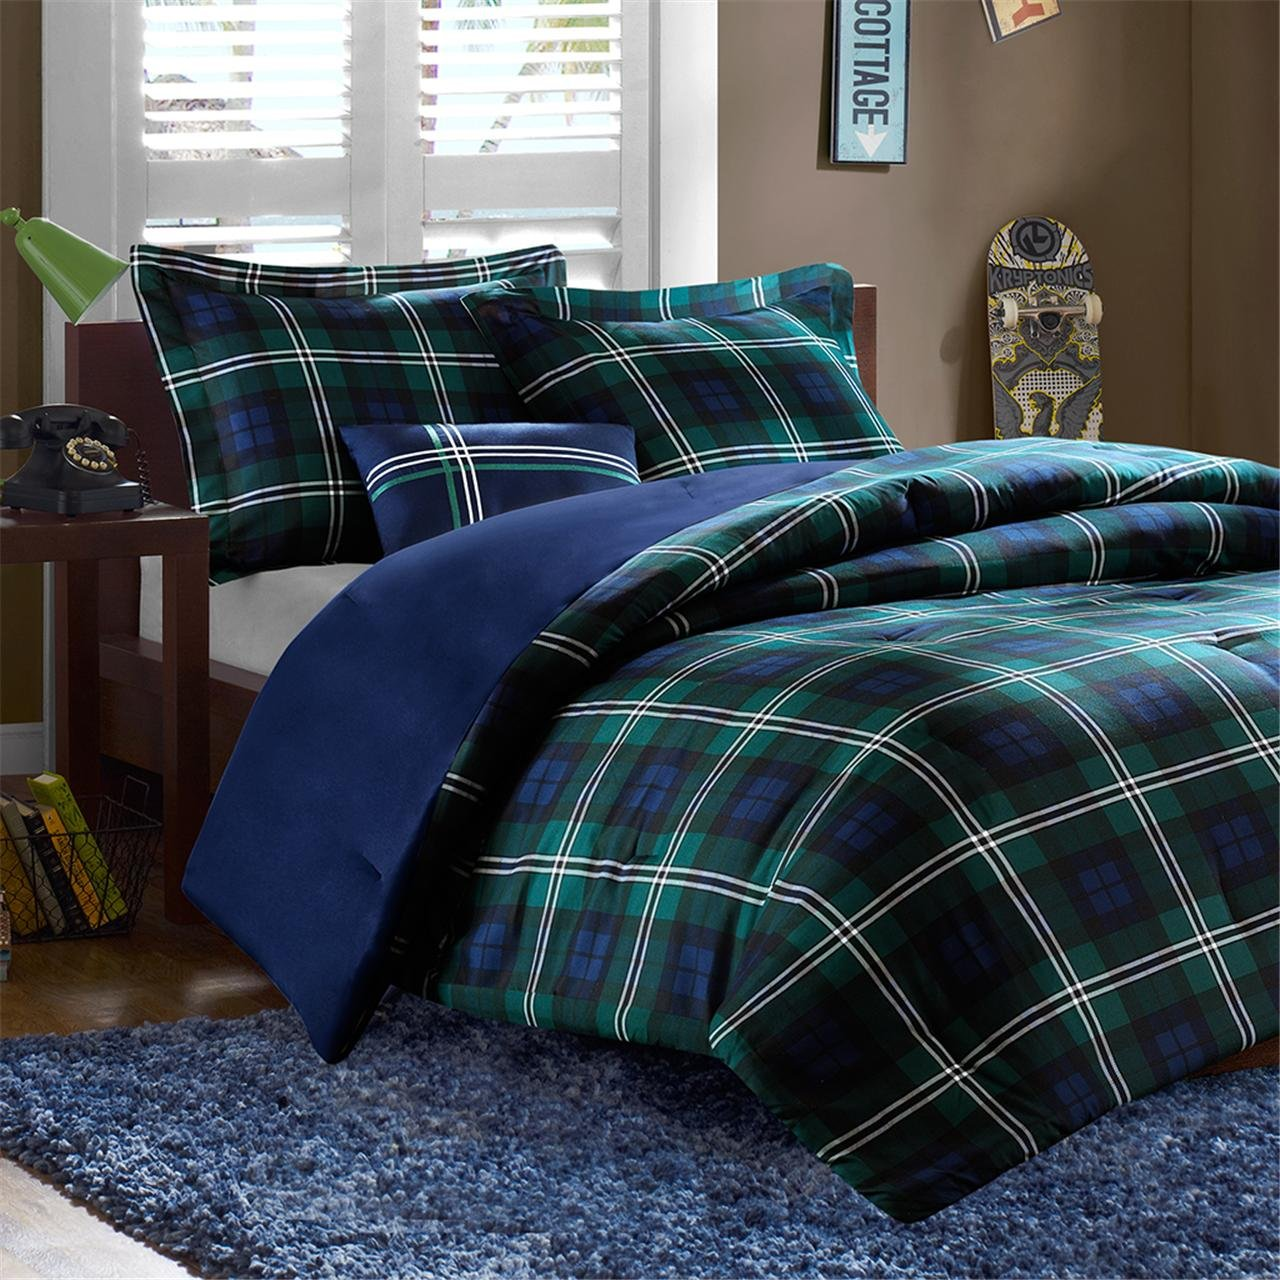 Blue & Green Plaid Boys Full / Queen Comforter